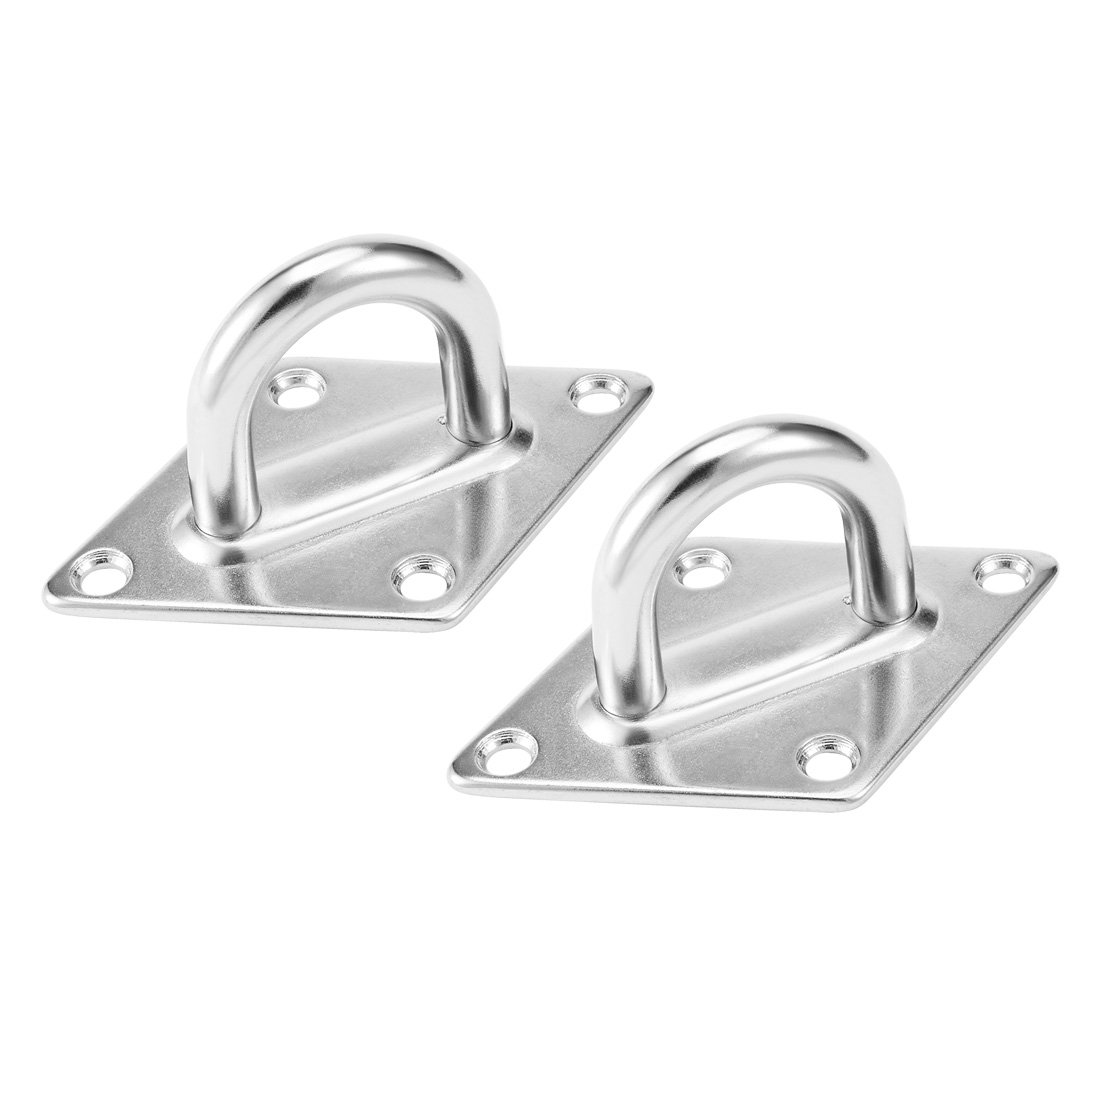 uxcell 304 Stainless Steel Pad Eye, 4.7-inch x 3-inch, 12mm Ring Sail Shade Plate Marine Boat Rigging, 2 Pack